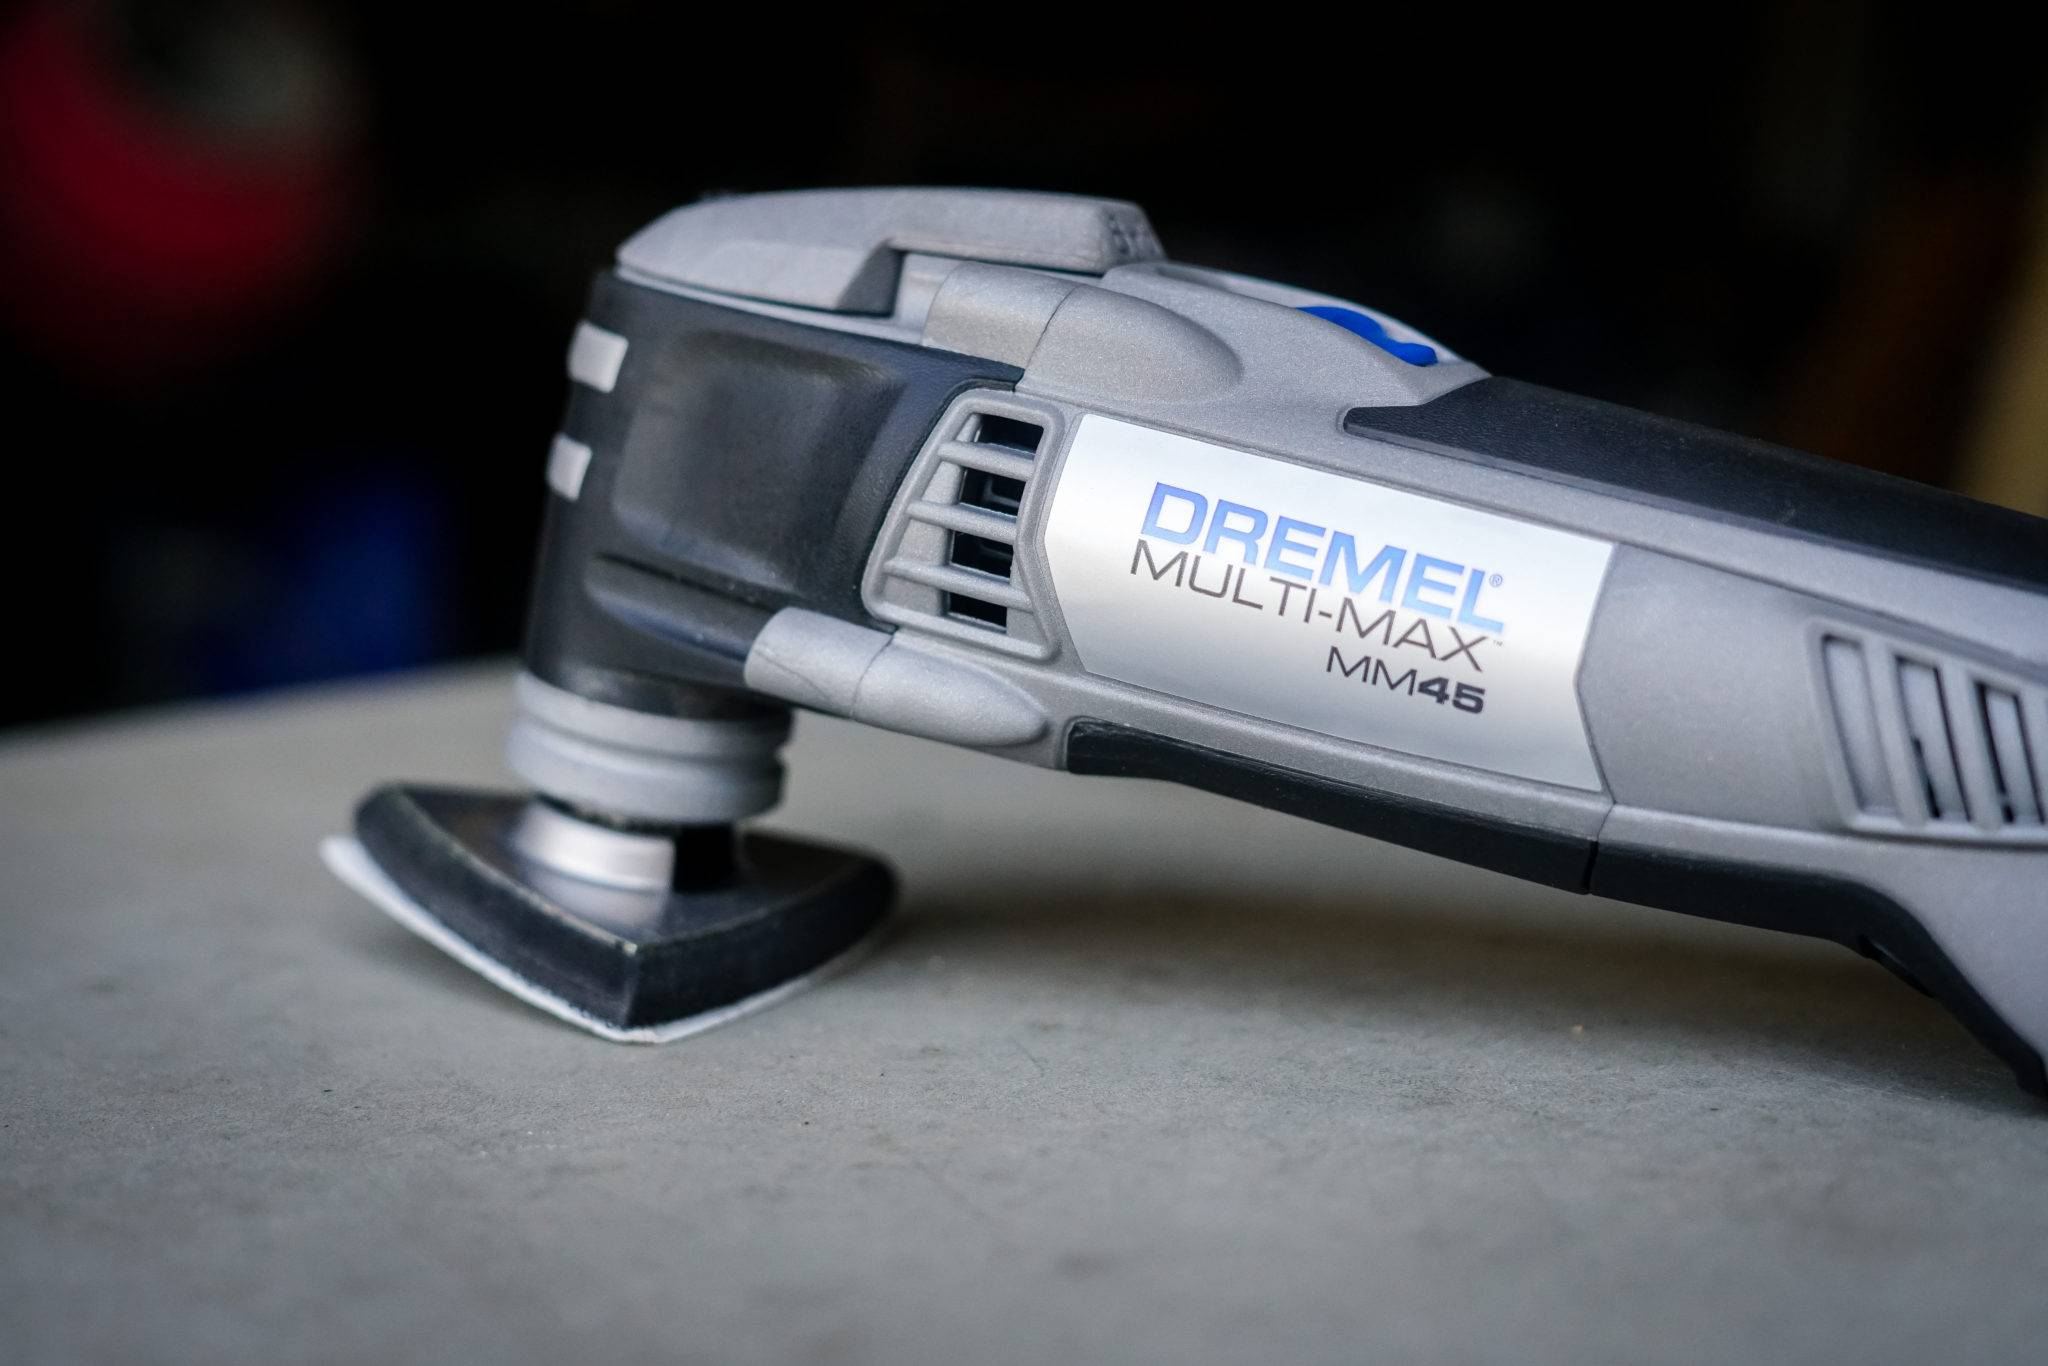 Dremel Multi-Max 5 Amp Variable Speed Corded Oscillating Multi-Tool Kit